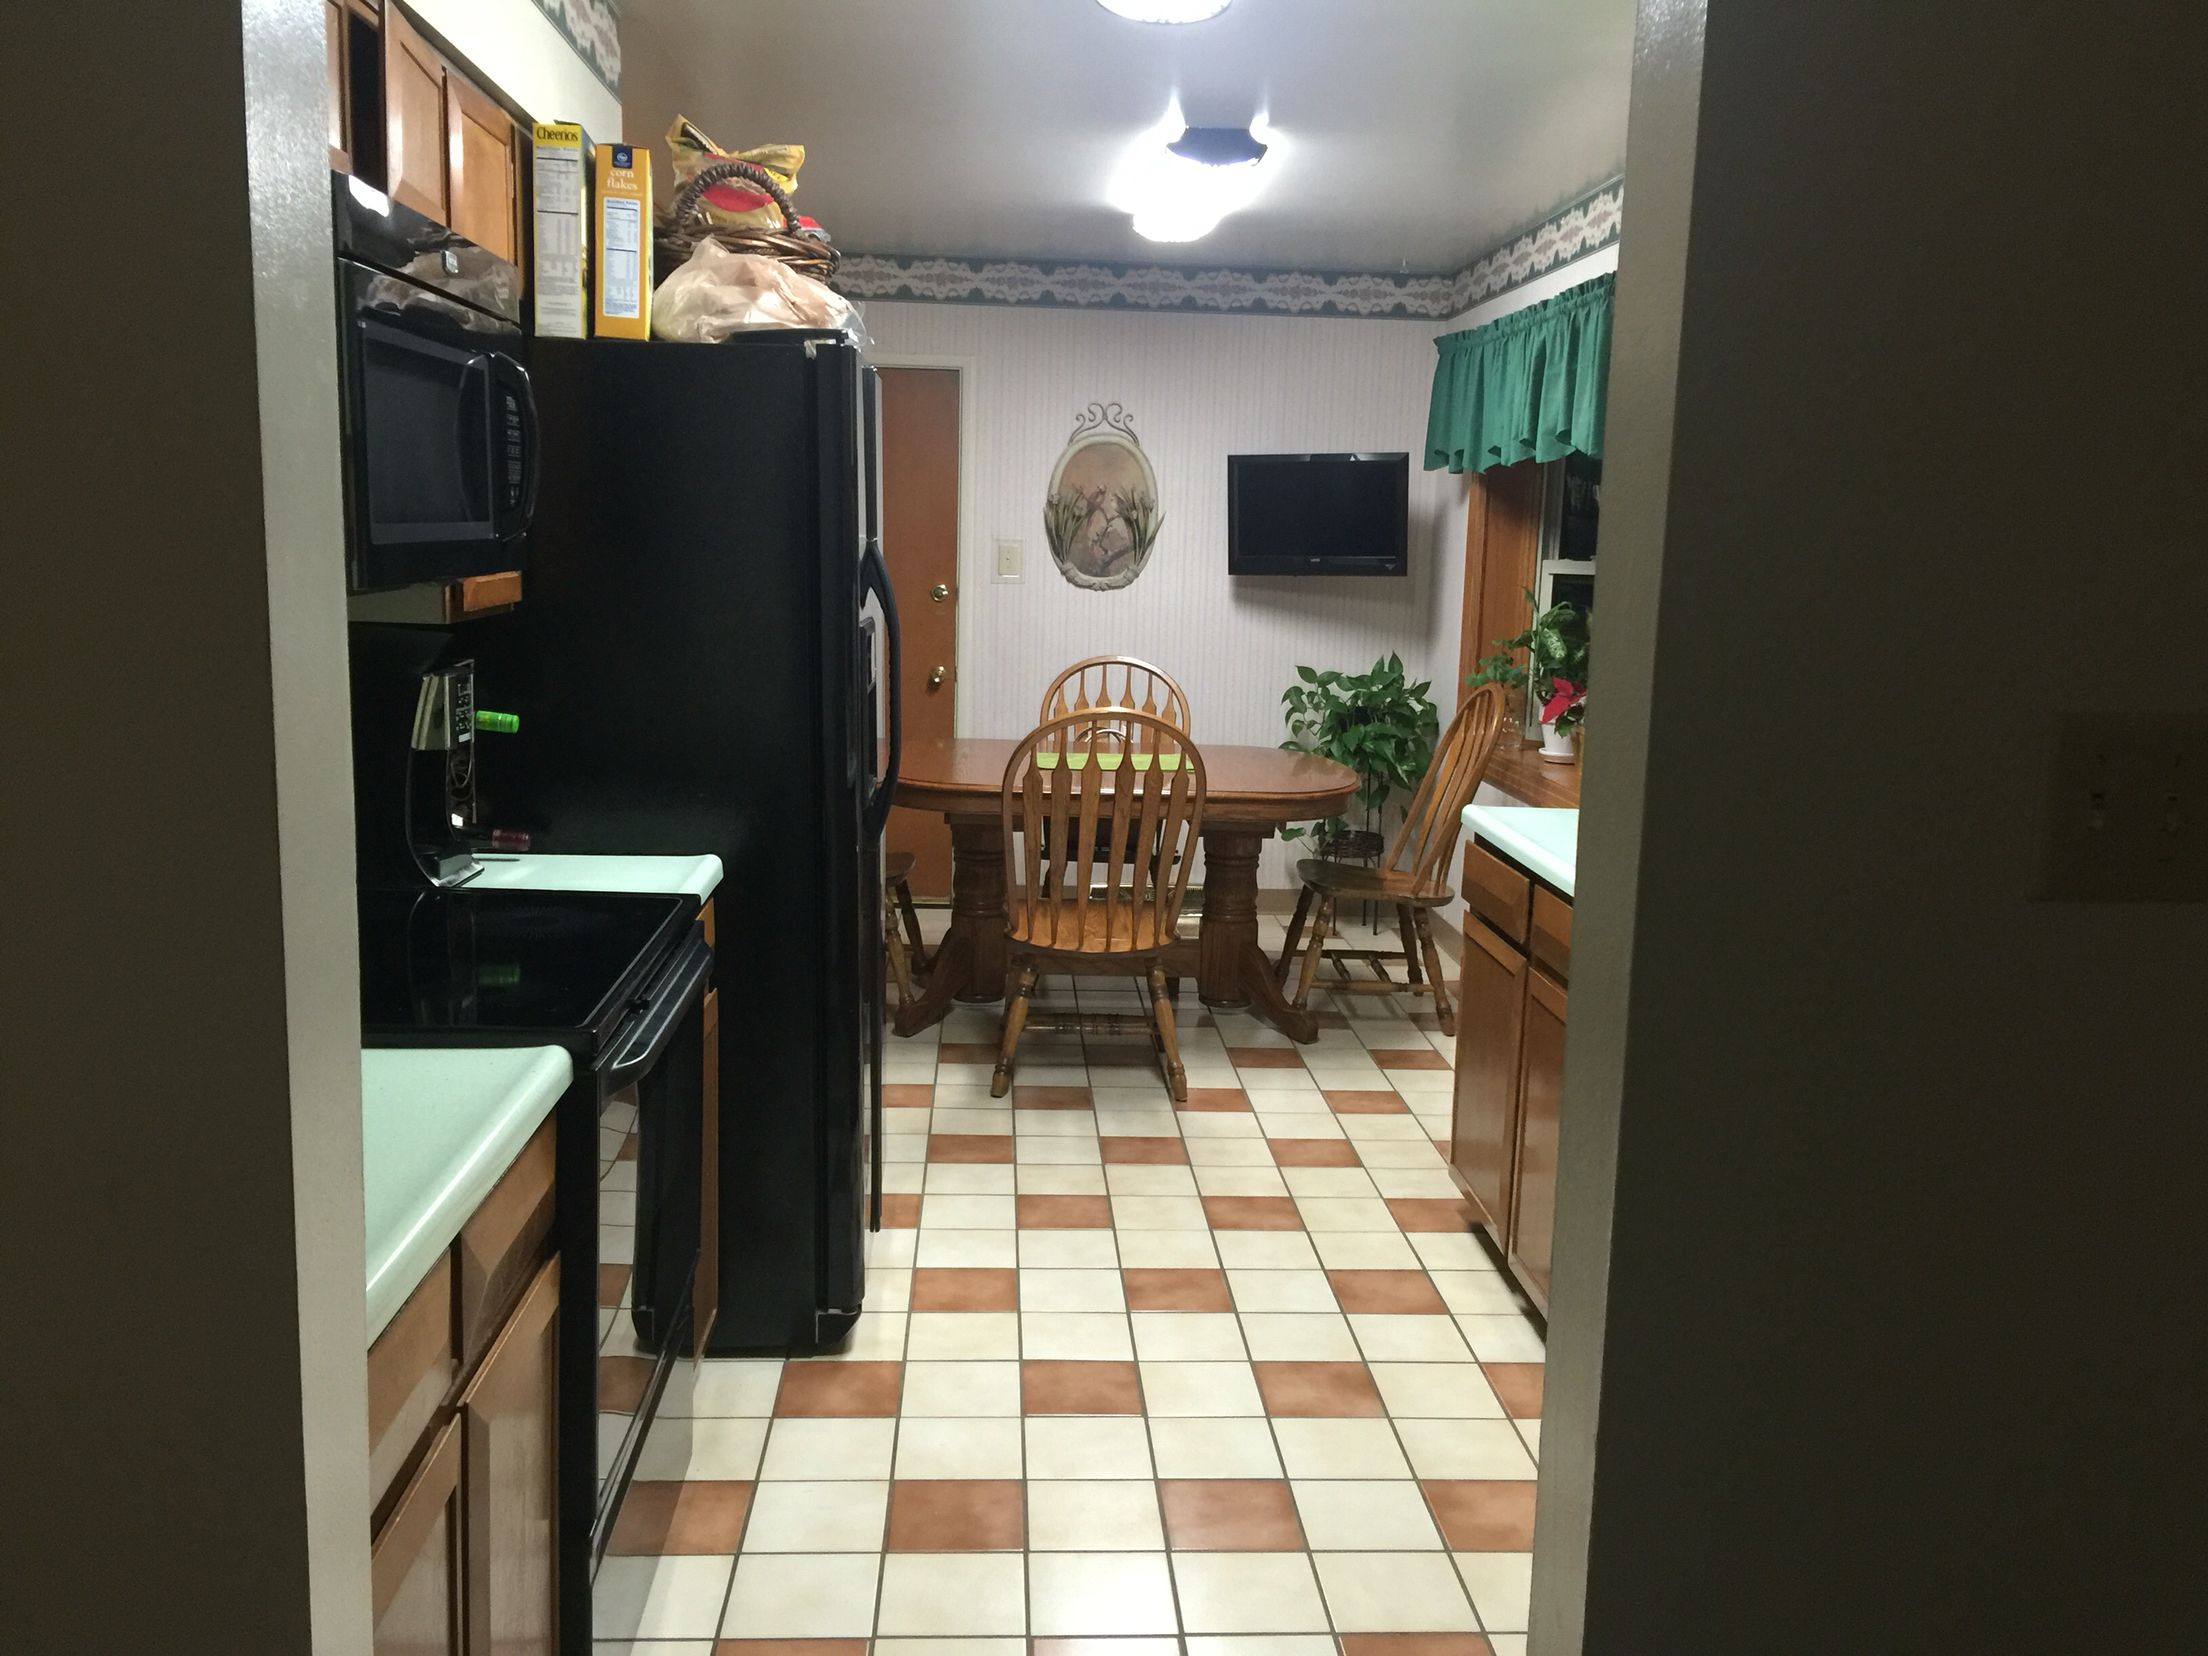 Pin By Brenda Overton On Galley Kitchen Remodel Before After - Remodeling a galley kitchen